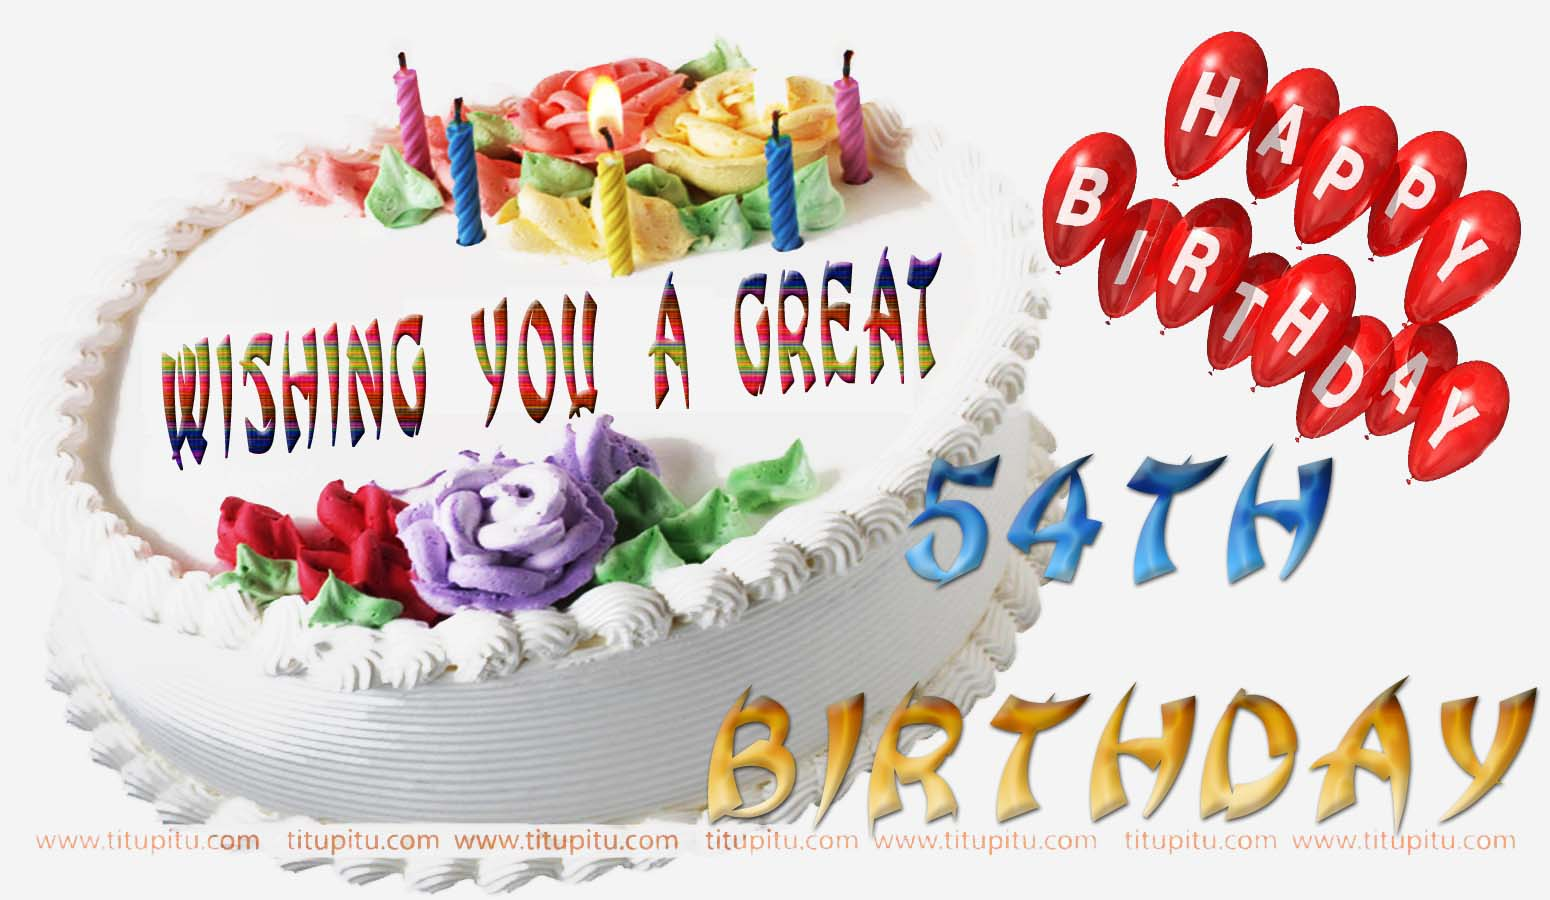 54th birthday wishes message and wallpaper for everyone haryanvi makhol jokes in hindi